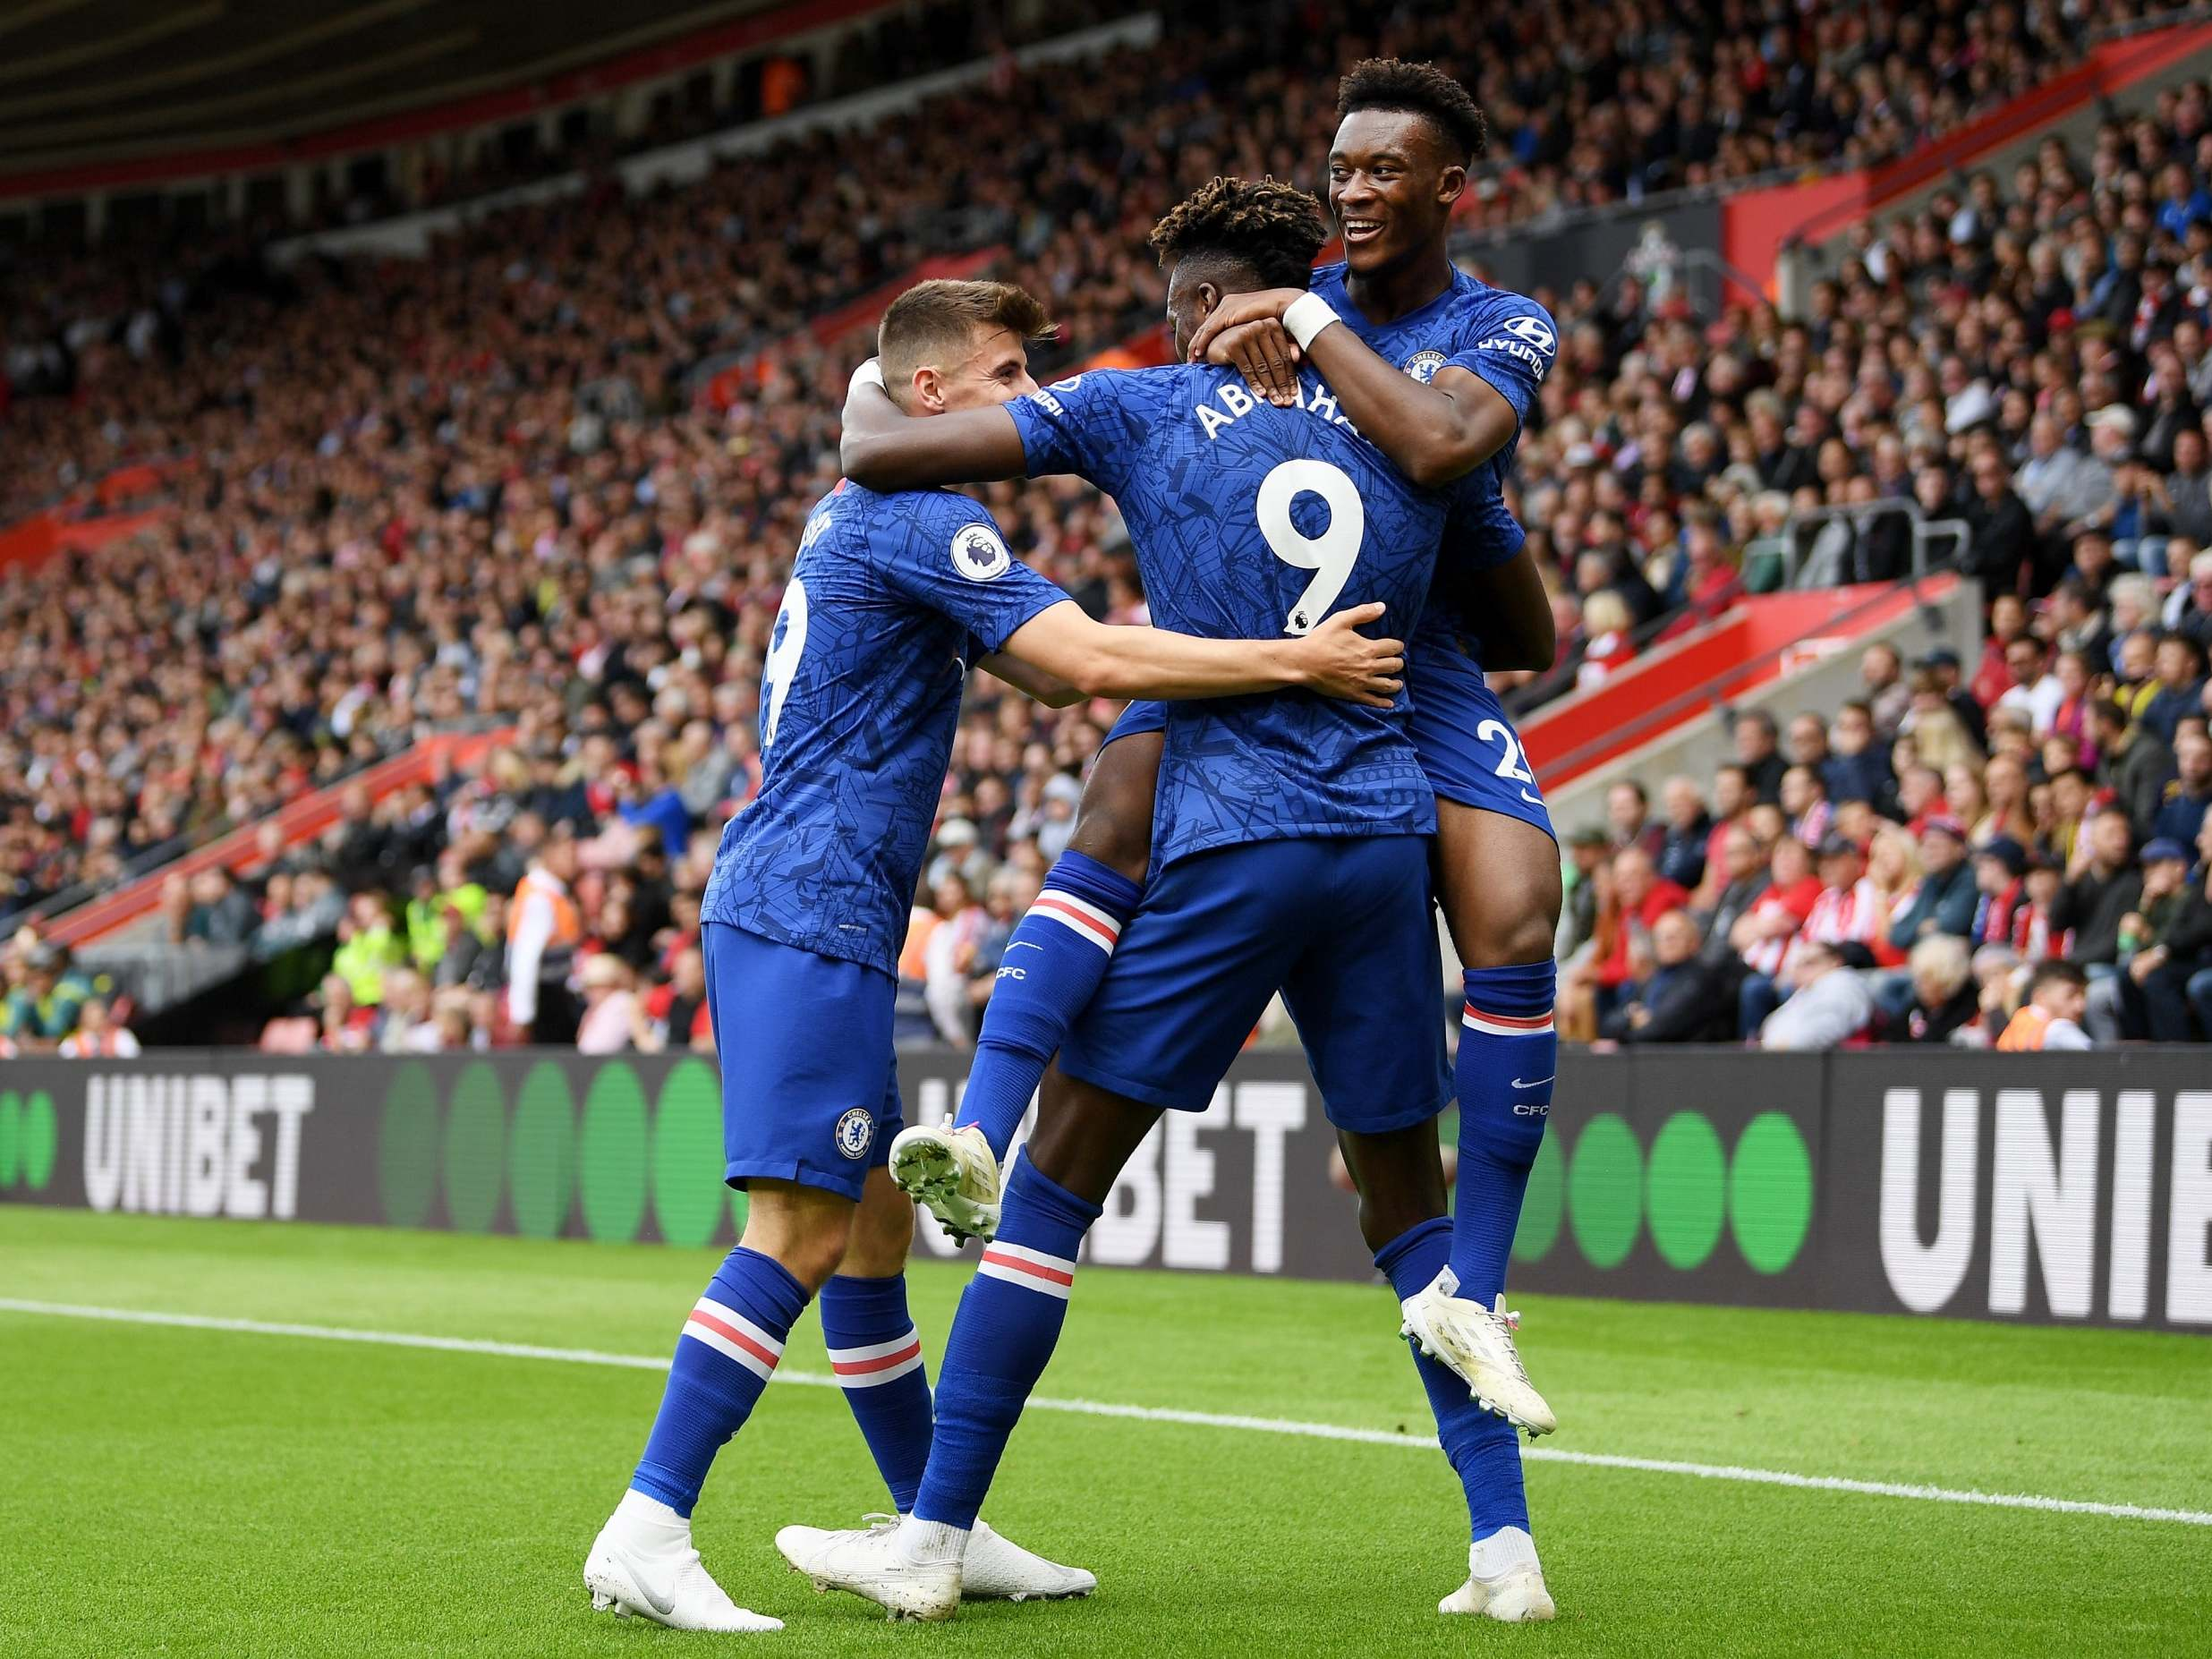 Southampton vs Chelsea LIVE result: Stream, latest score, goal updates, team news, prediction and more